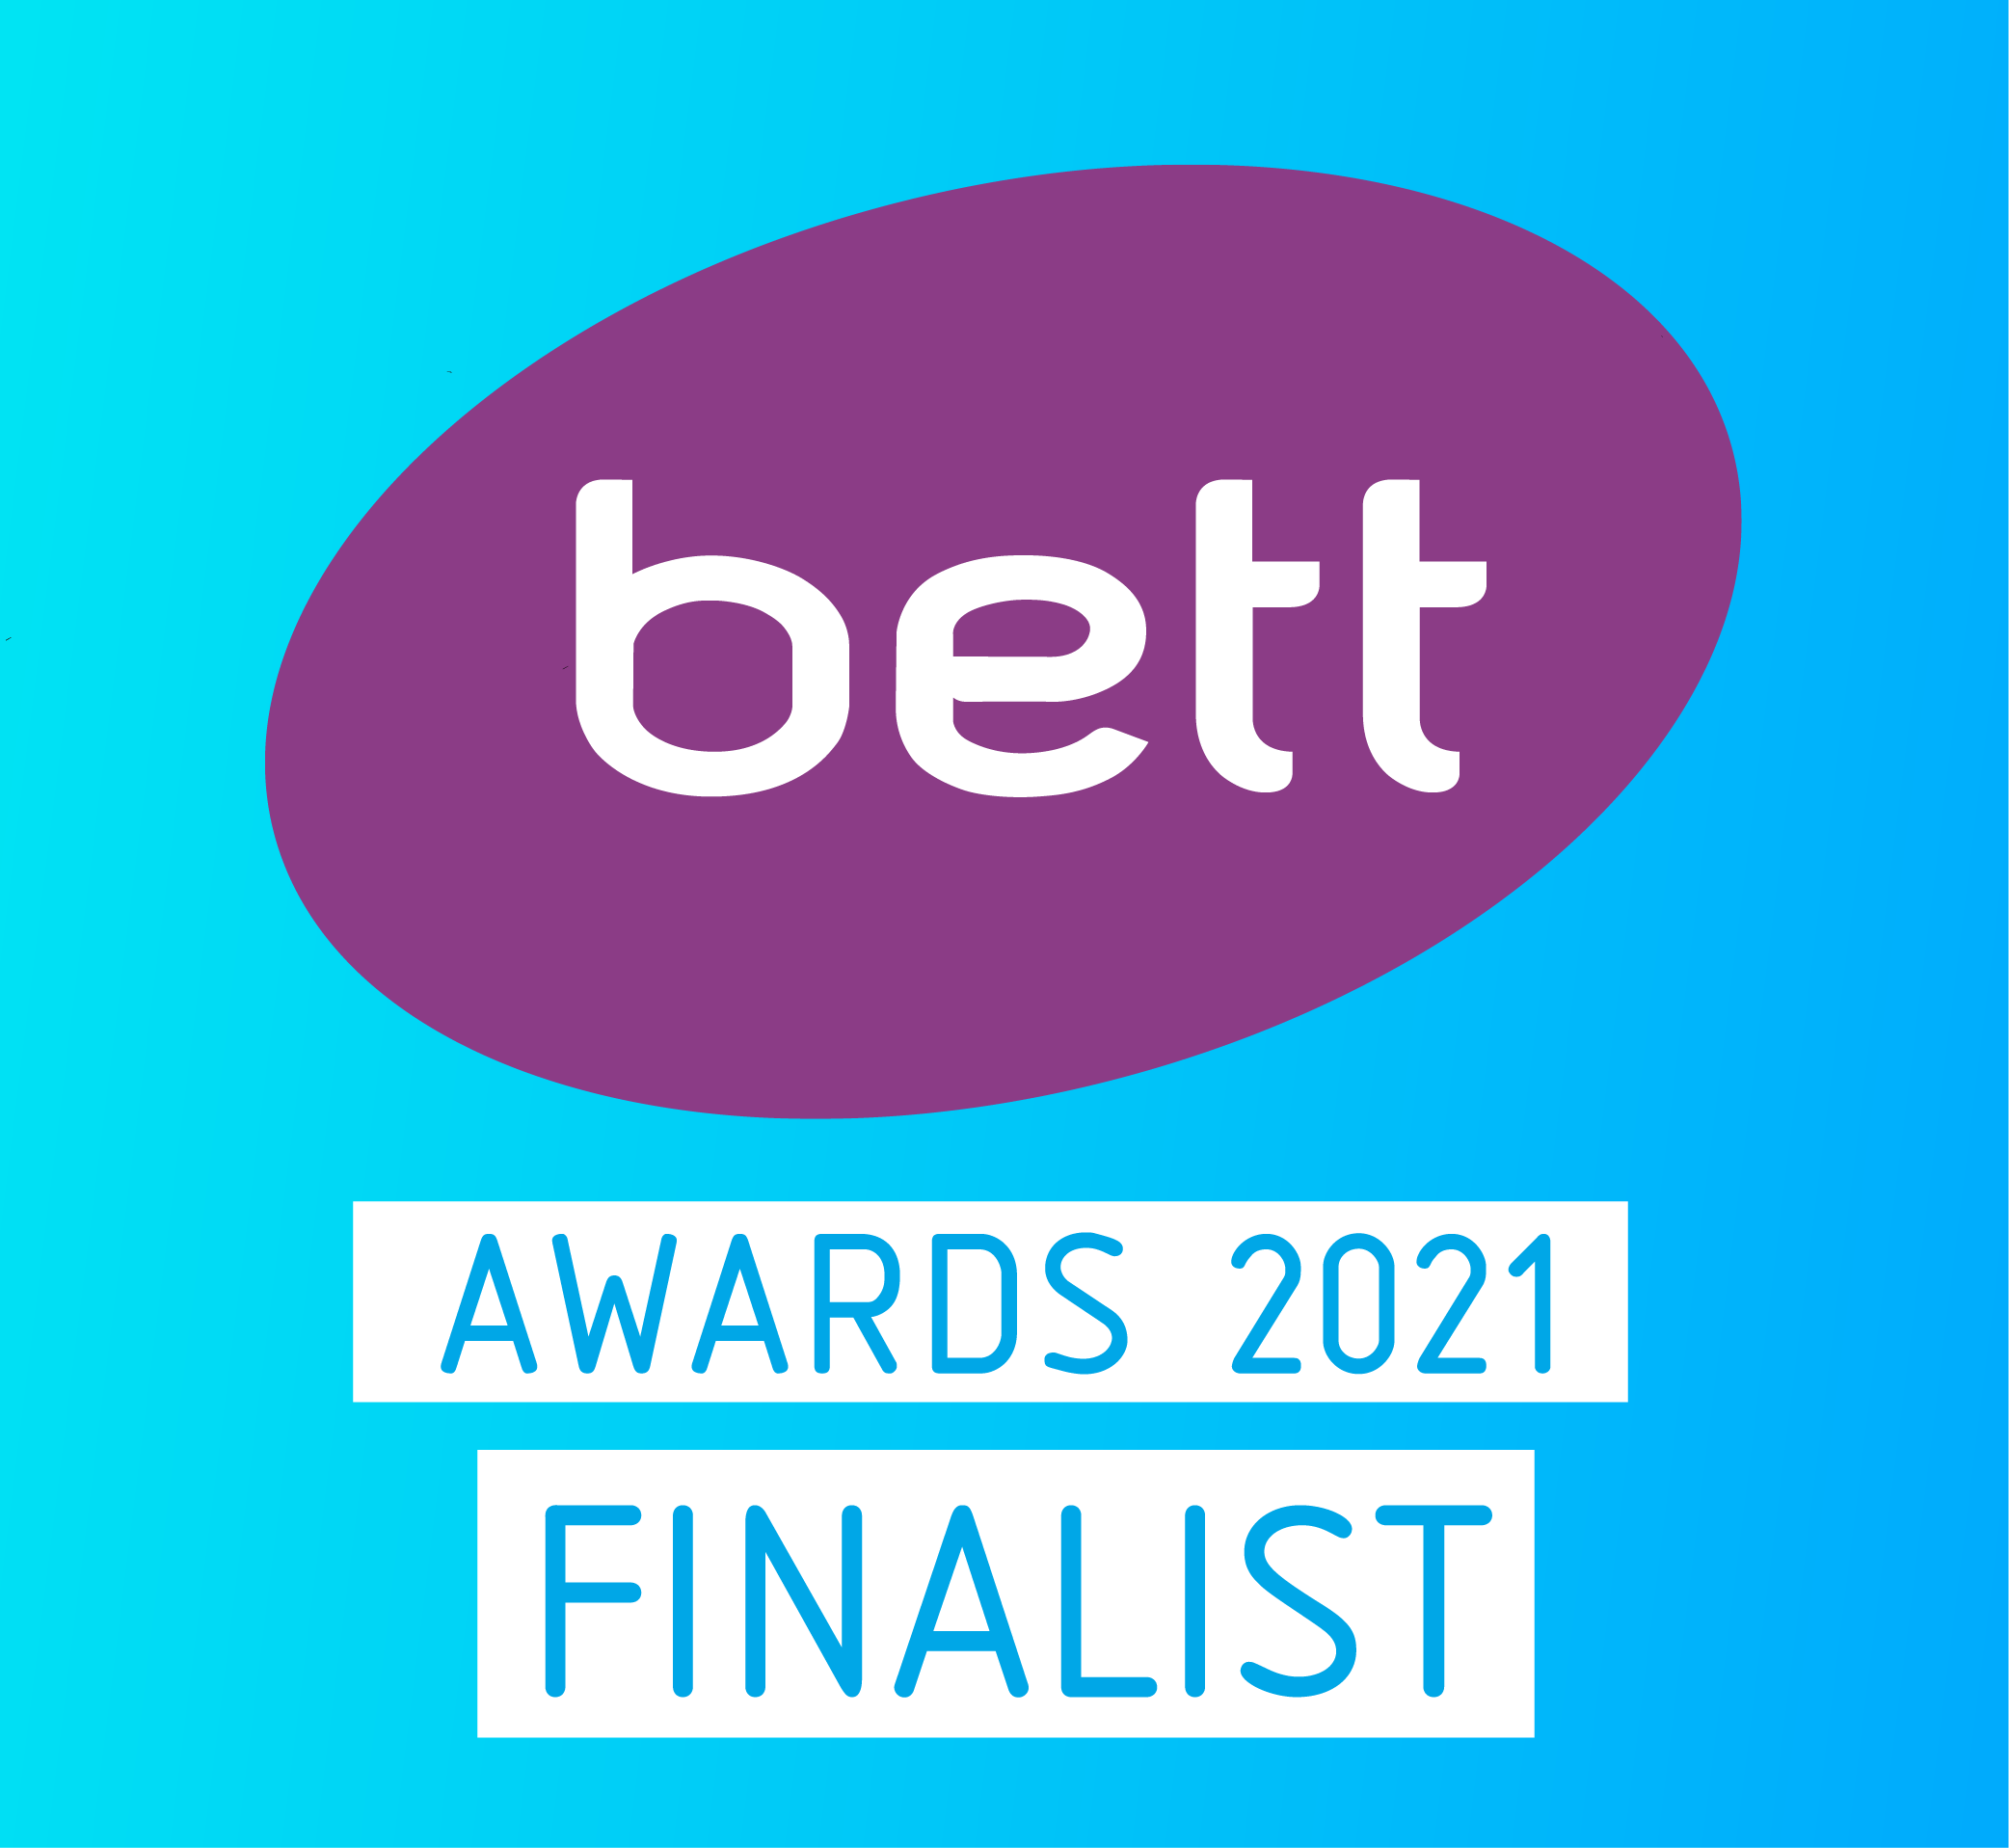 We are BETT Award Finalists!